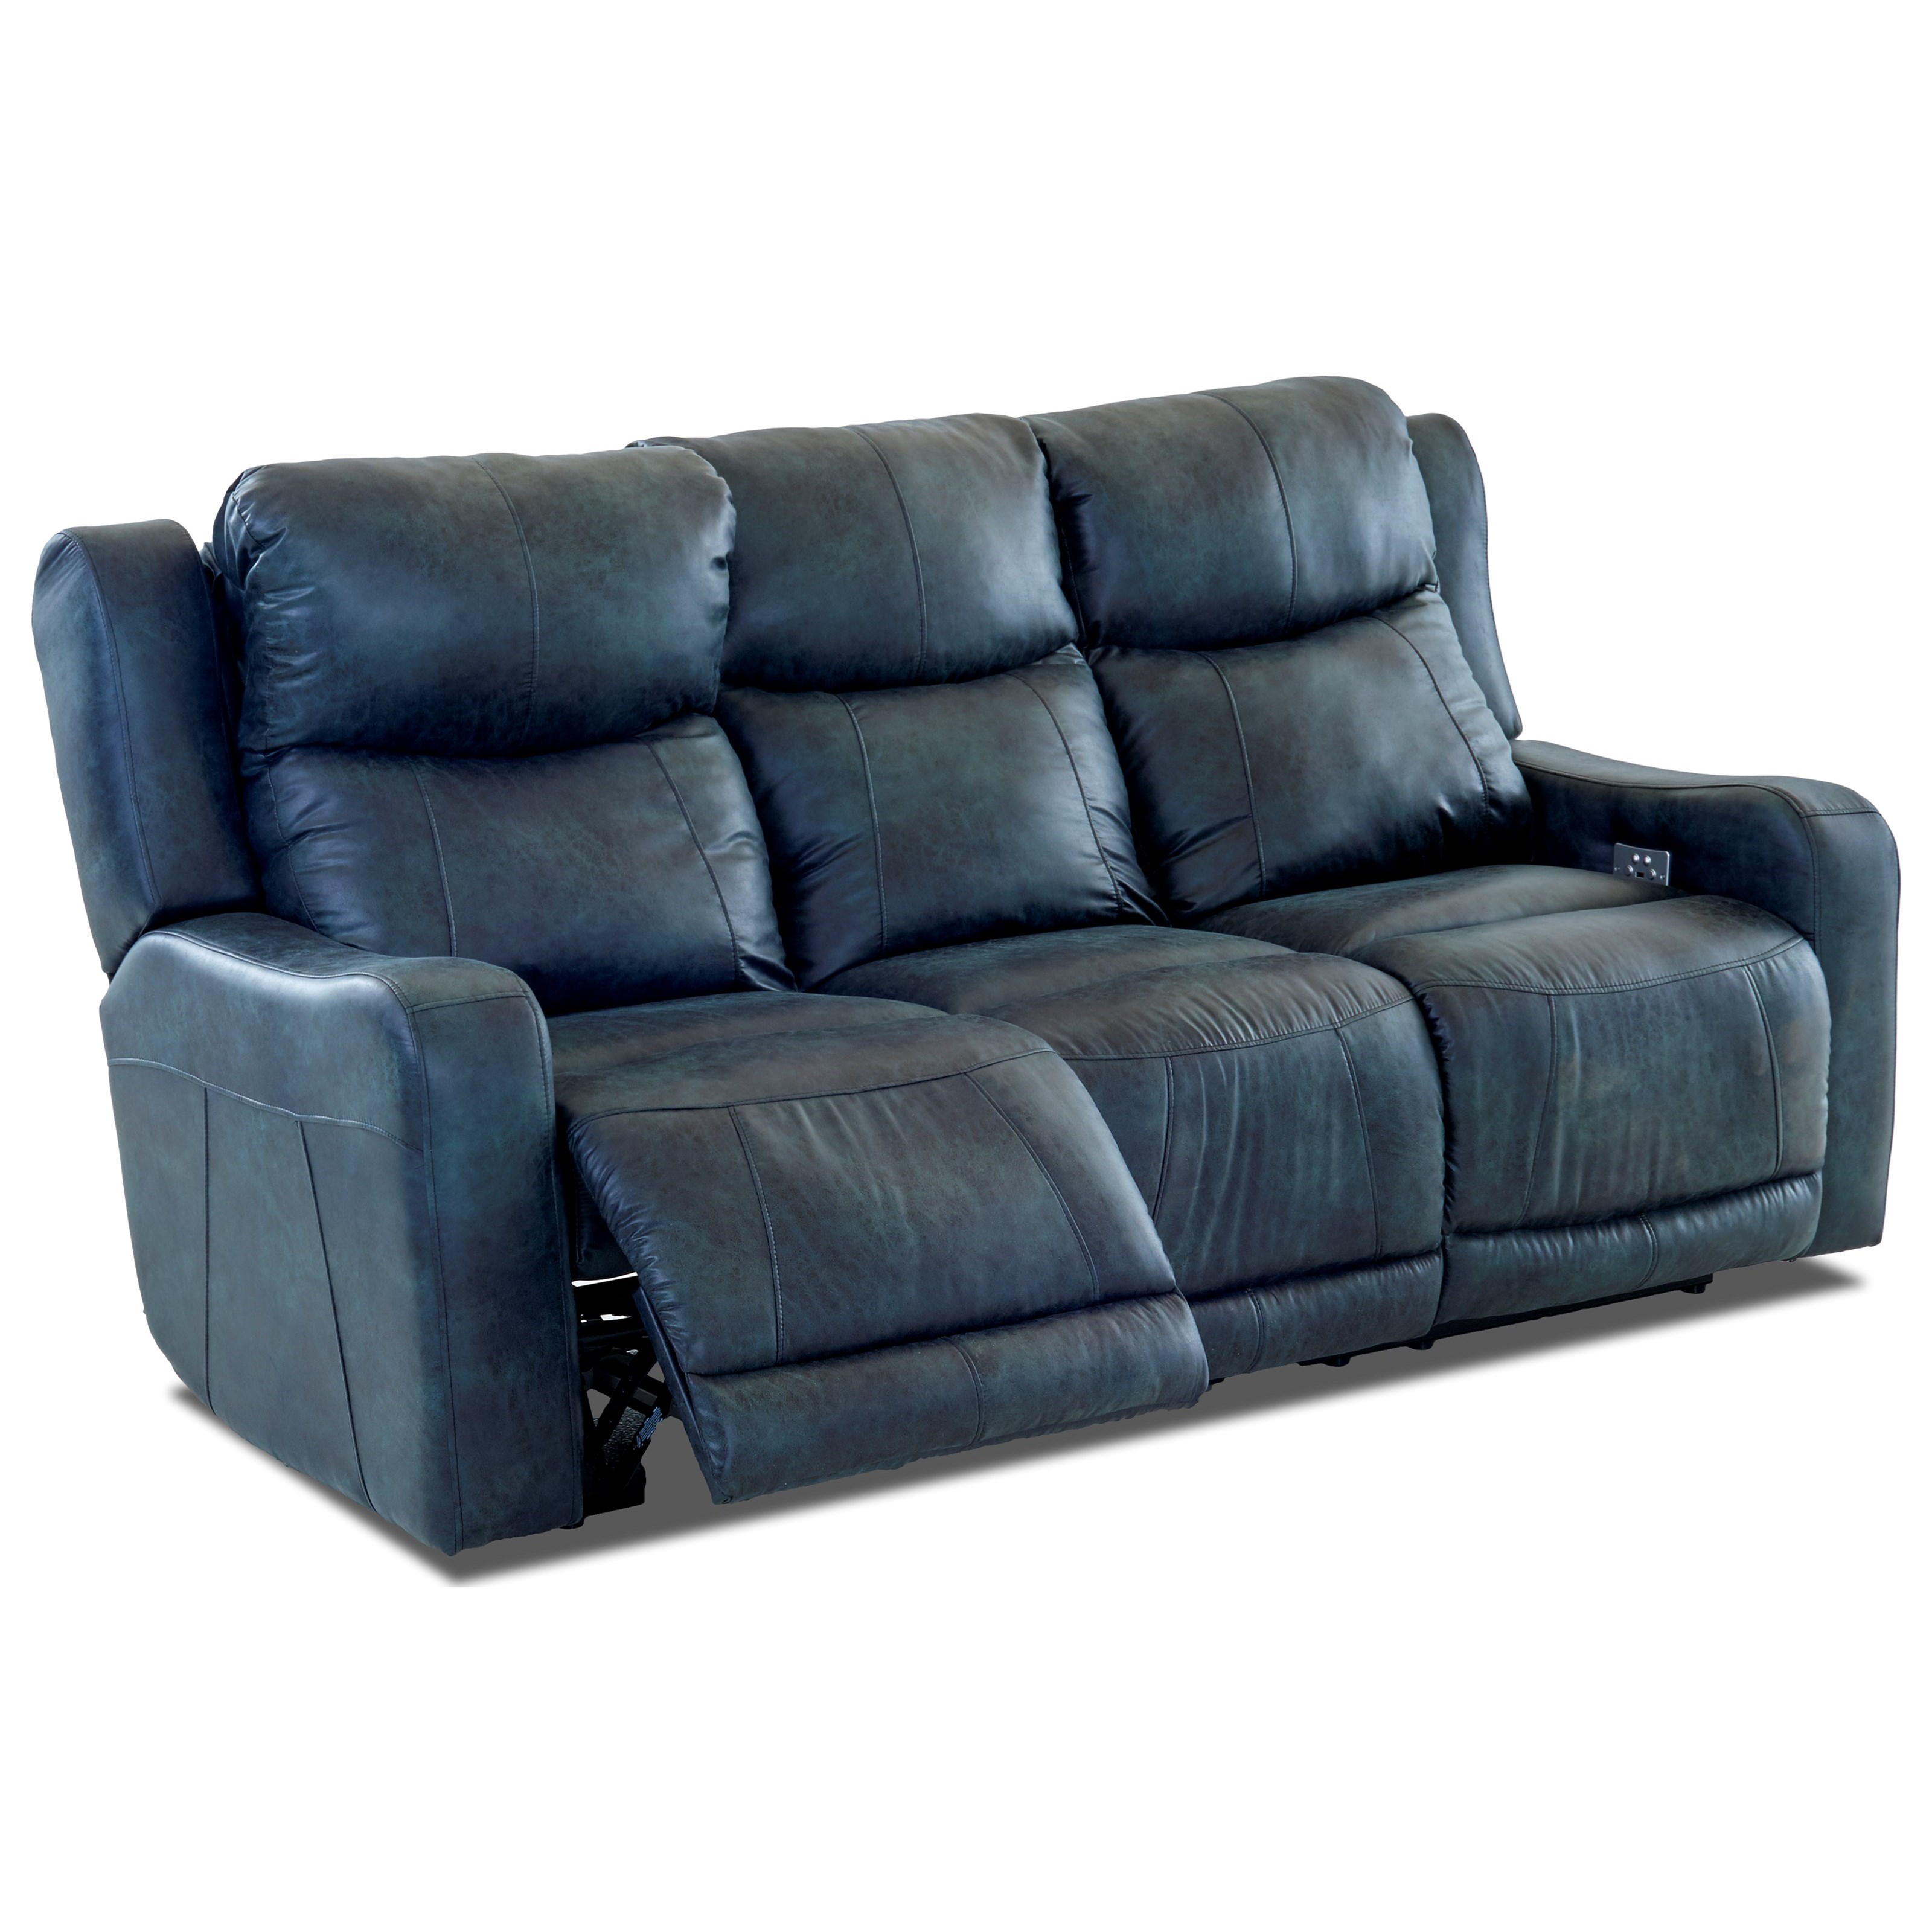 Power Reclining Sofa With Power Headrest And Usb Port By Klaussner